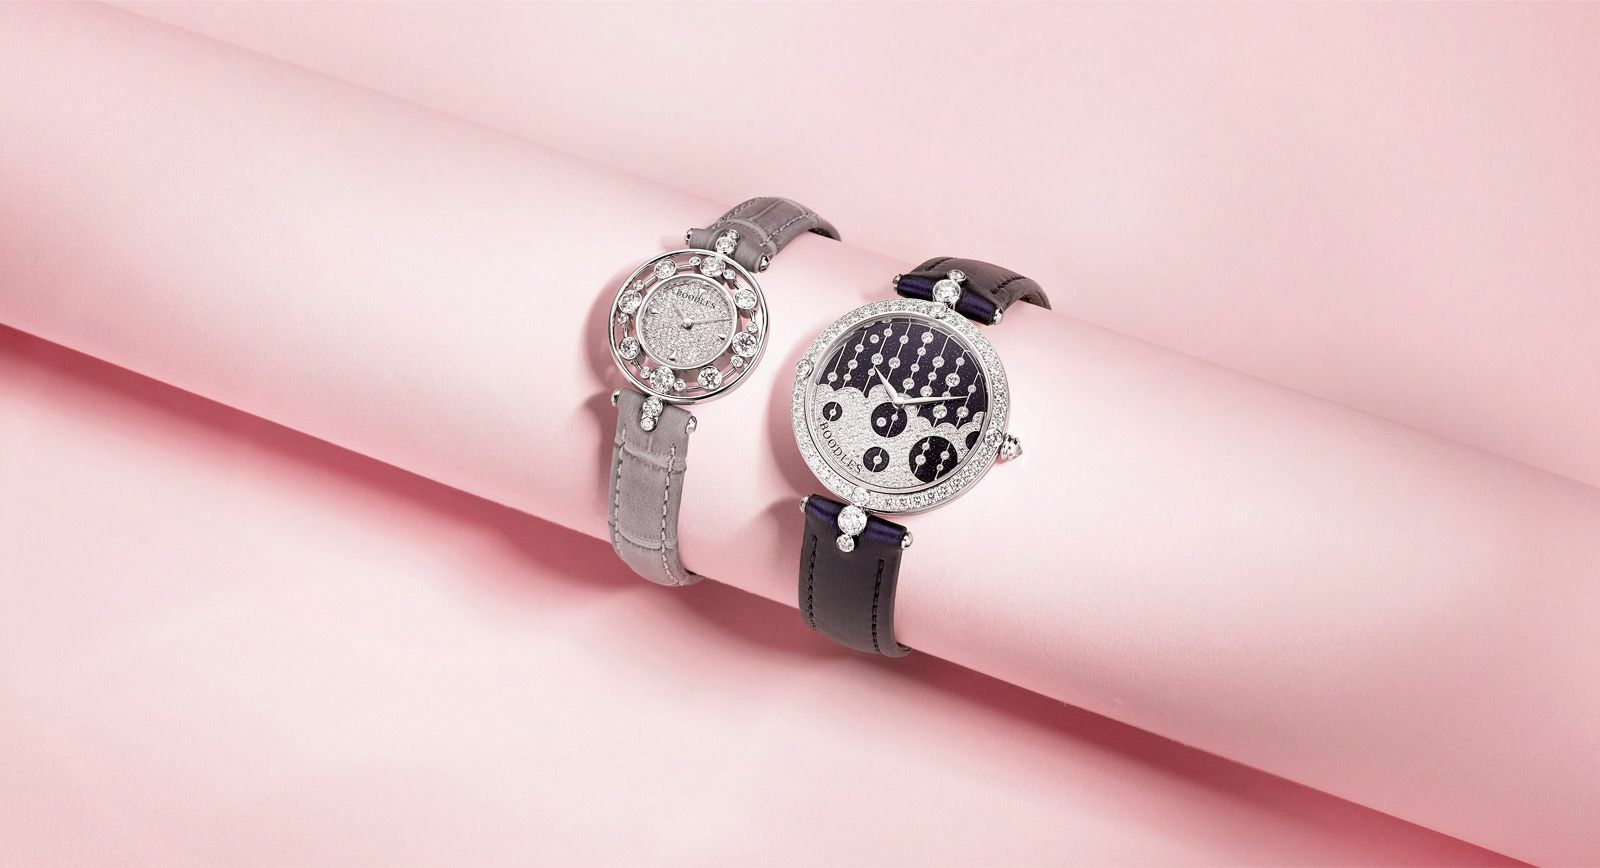 Boodles raindance watch